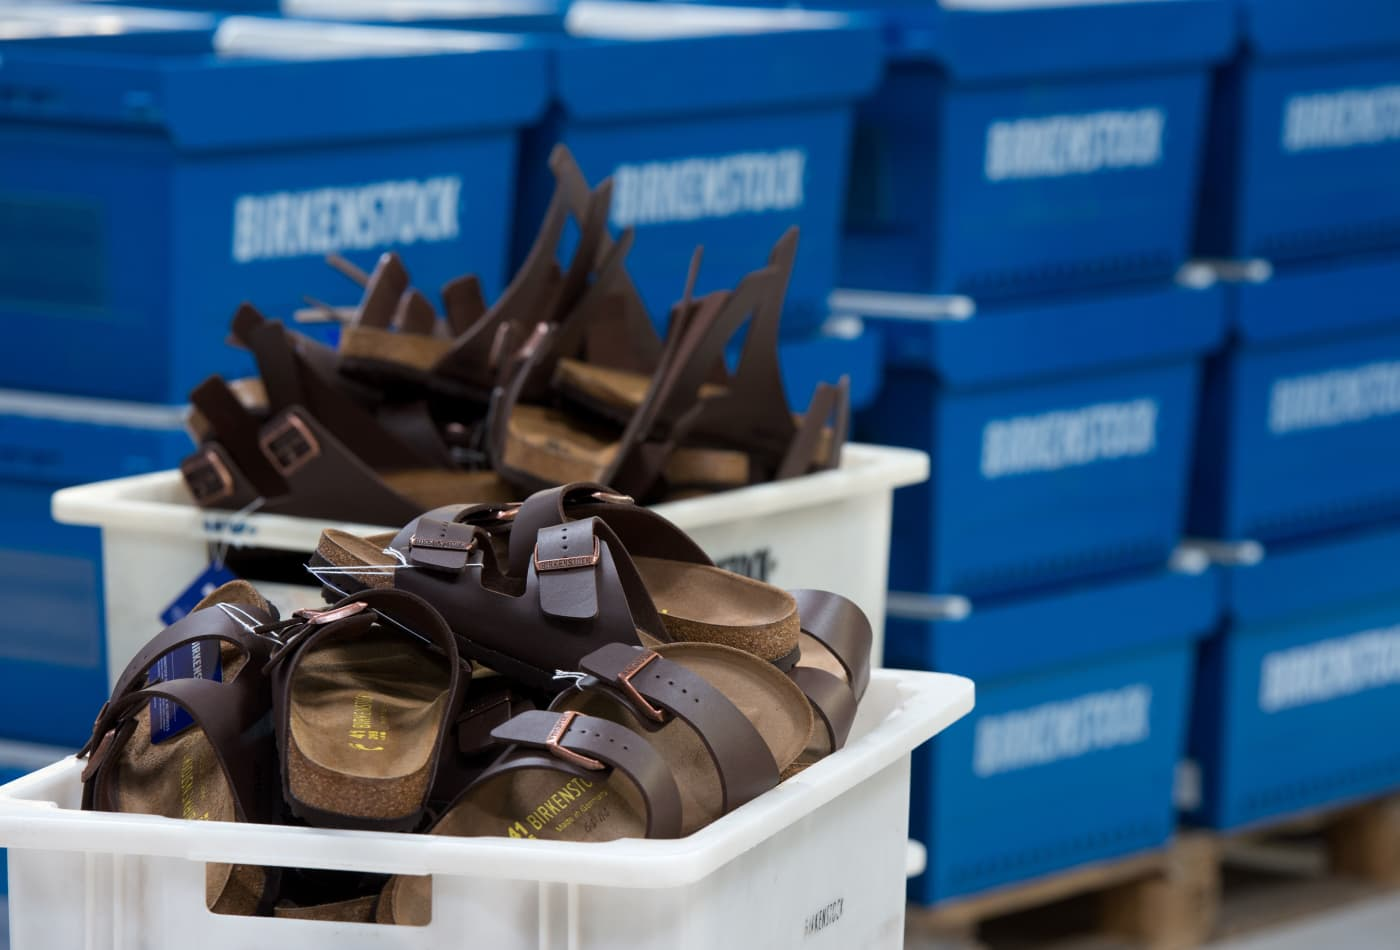 4dbf2cea8902 Birkenstock quits Amazon in US after counterfeit surge